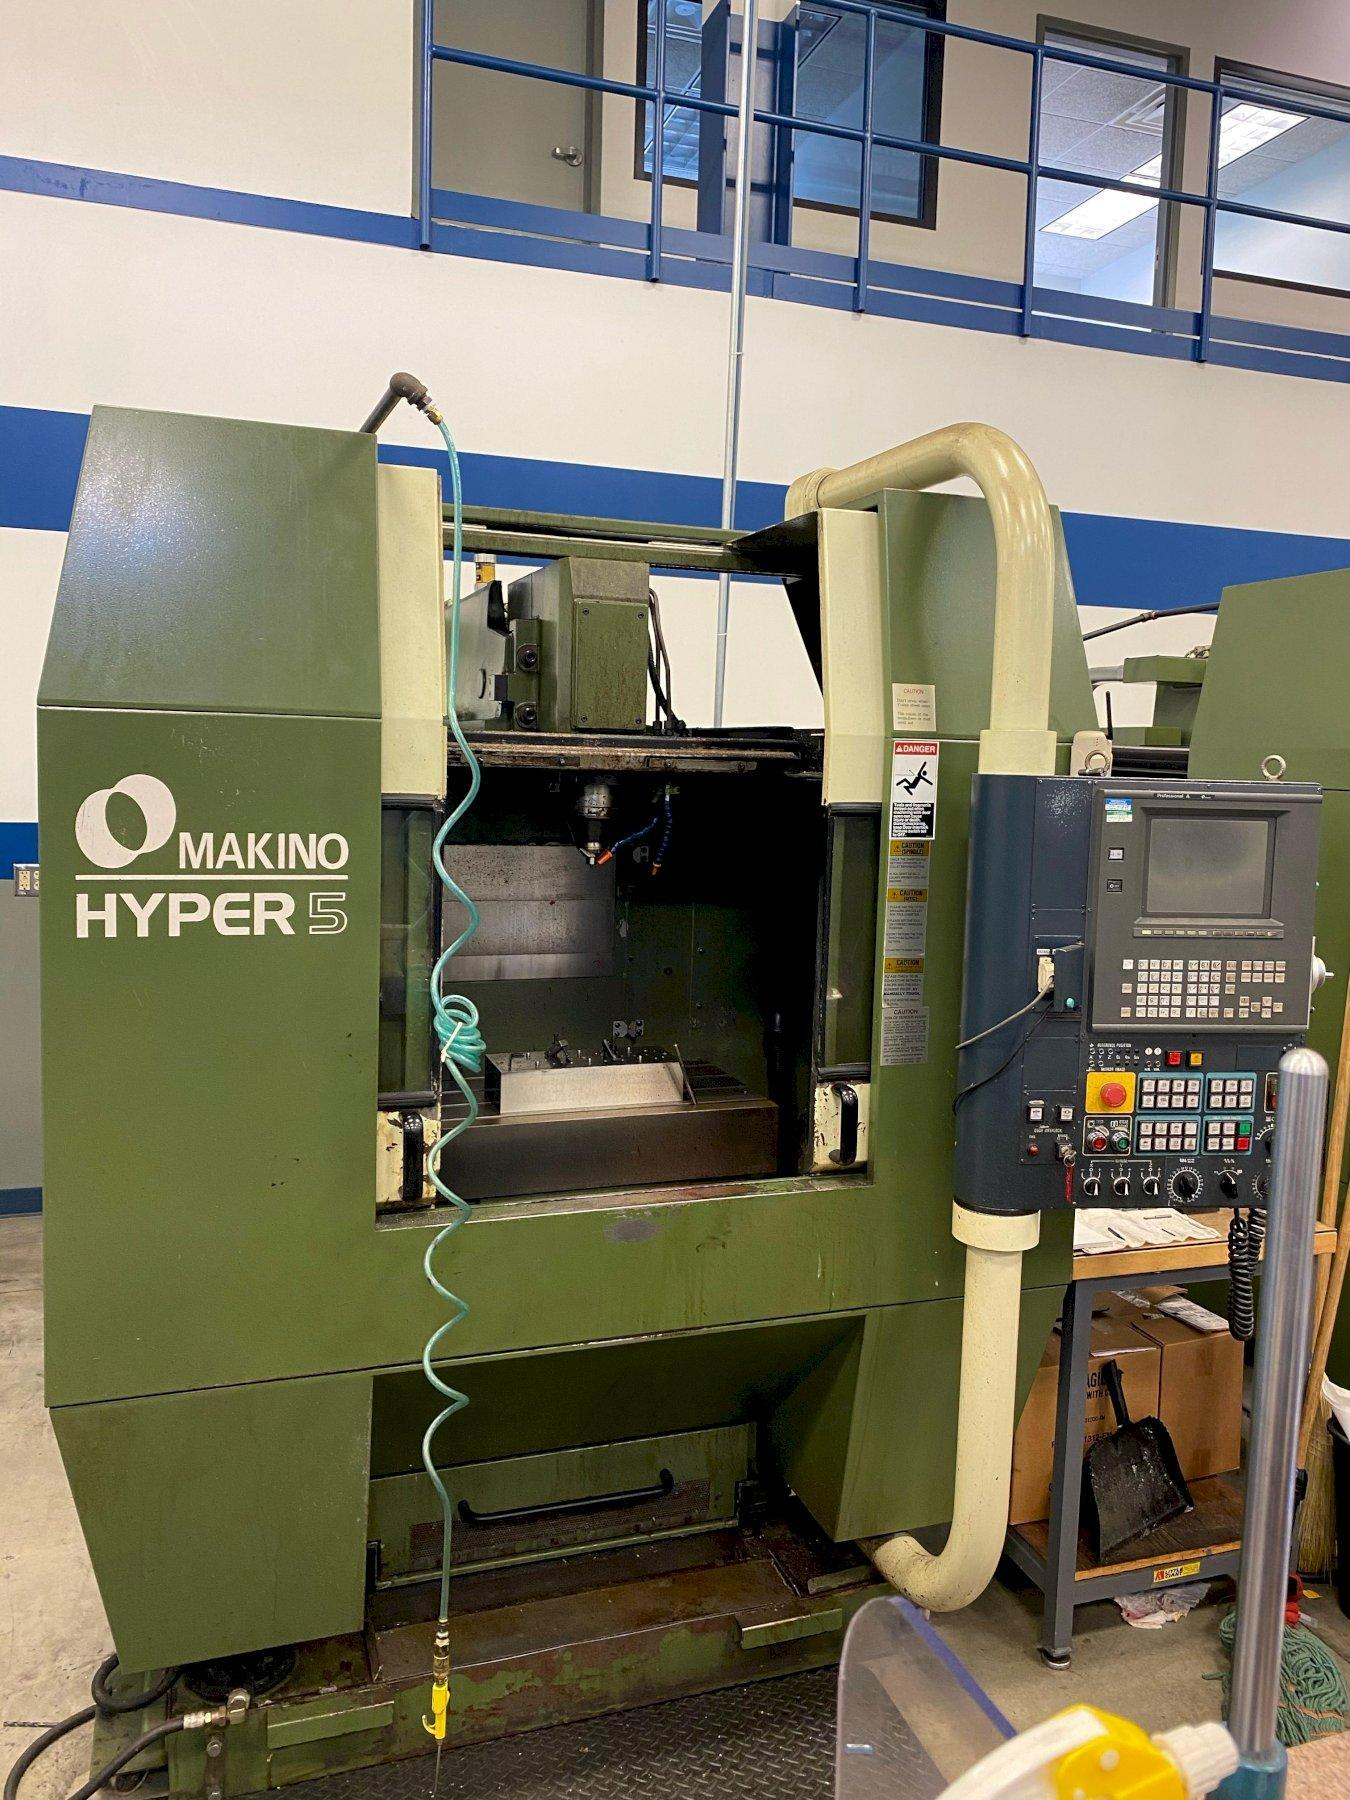 Makino Hyper 5 Vertical Machining Center